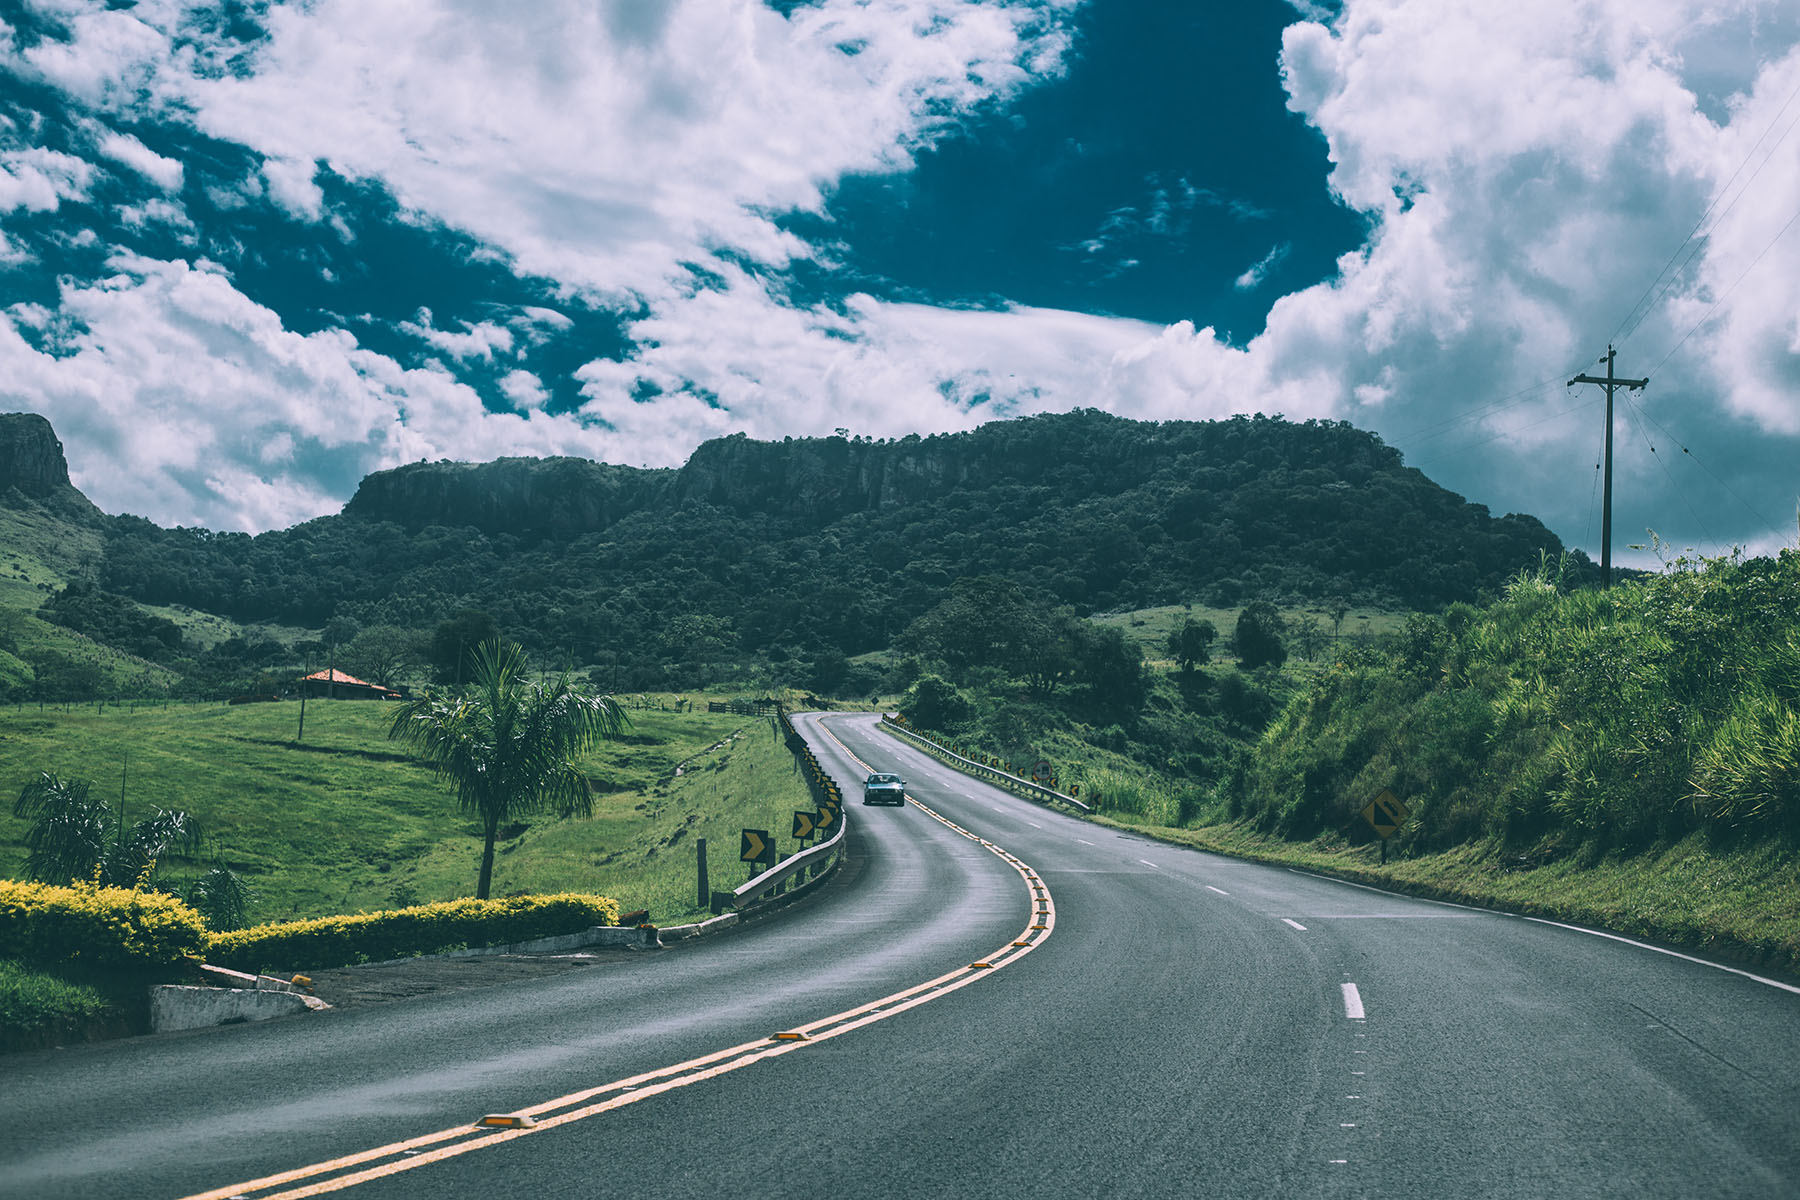 car-clouds-countryside-57645